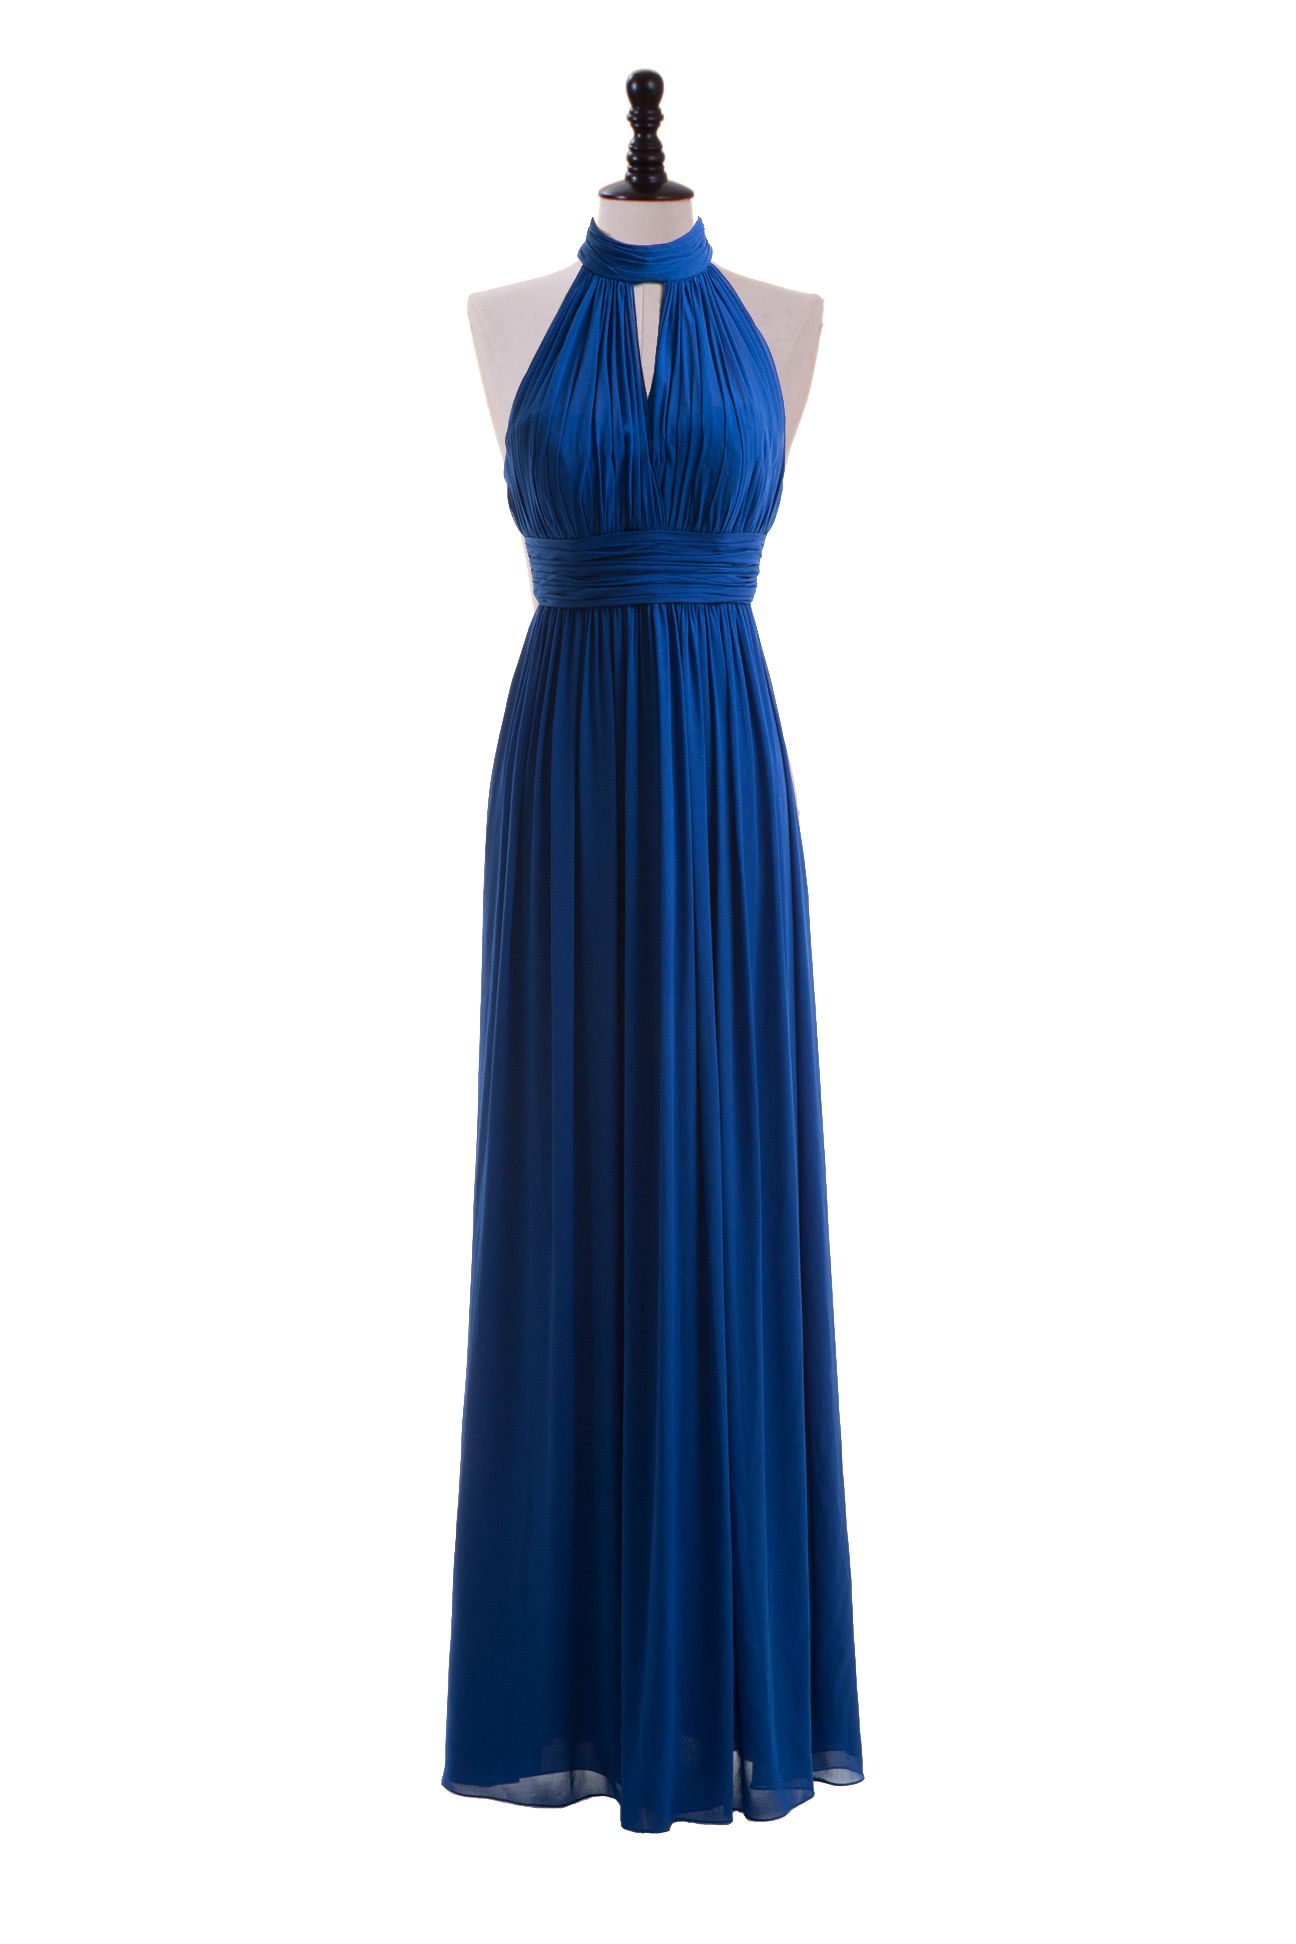 High neck strapless chiffon dress cute style but in emerald green